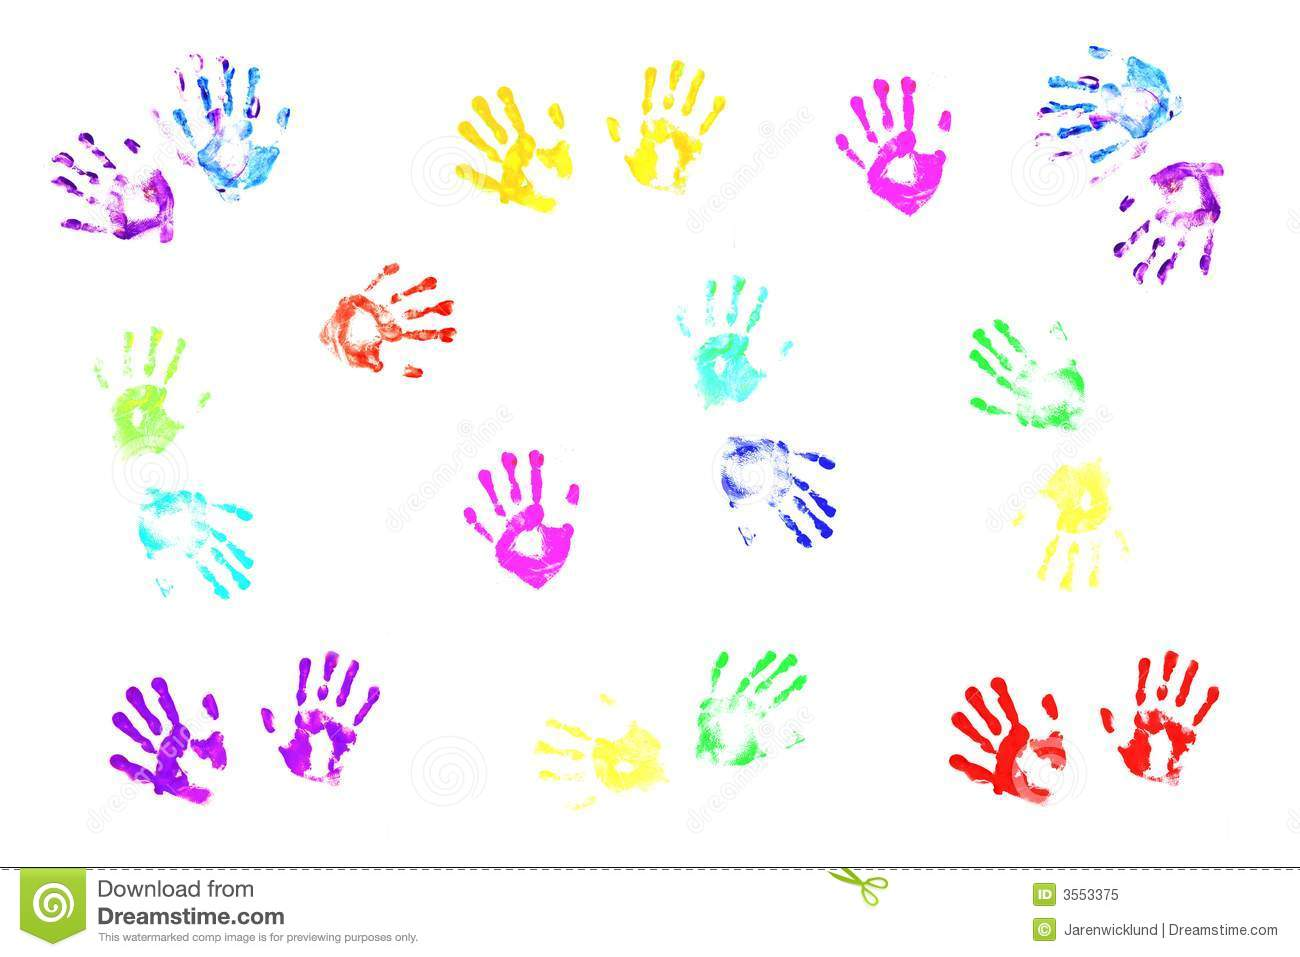 Colorful Handprints By Kids Illustration 3553375 - Megapixl